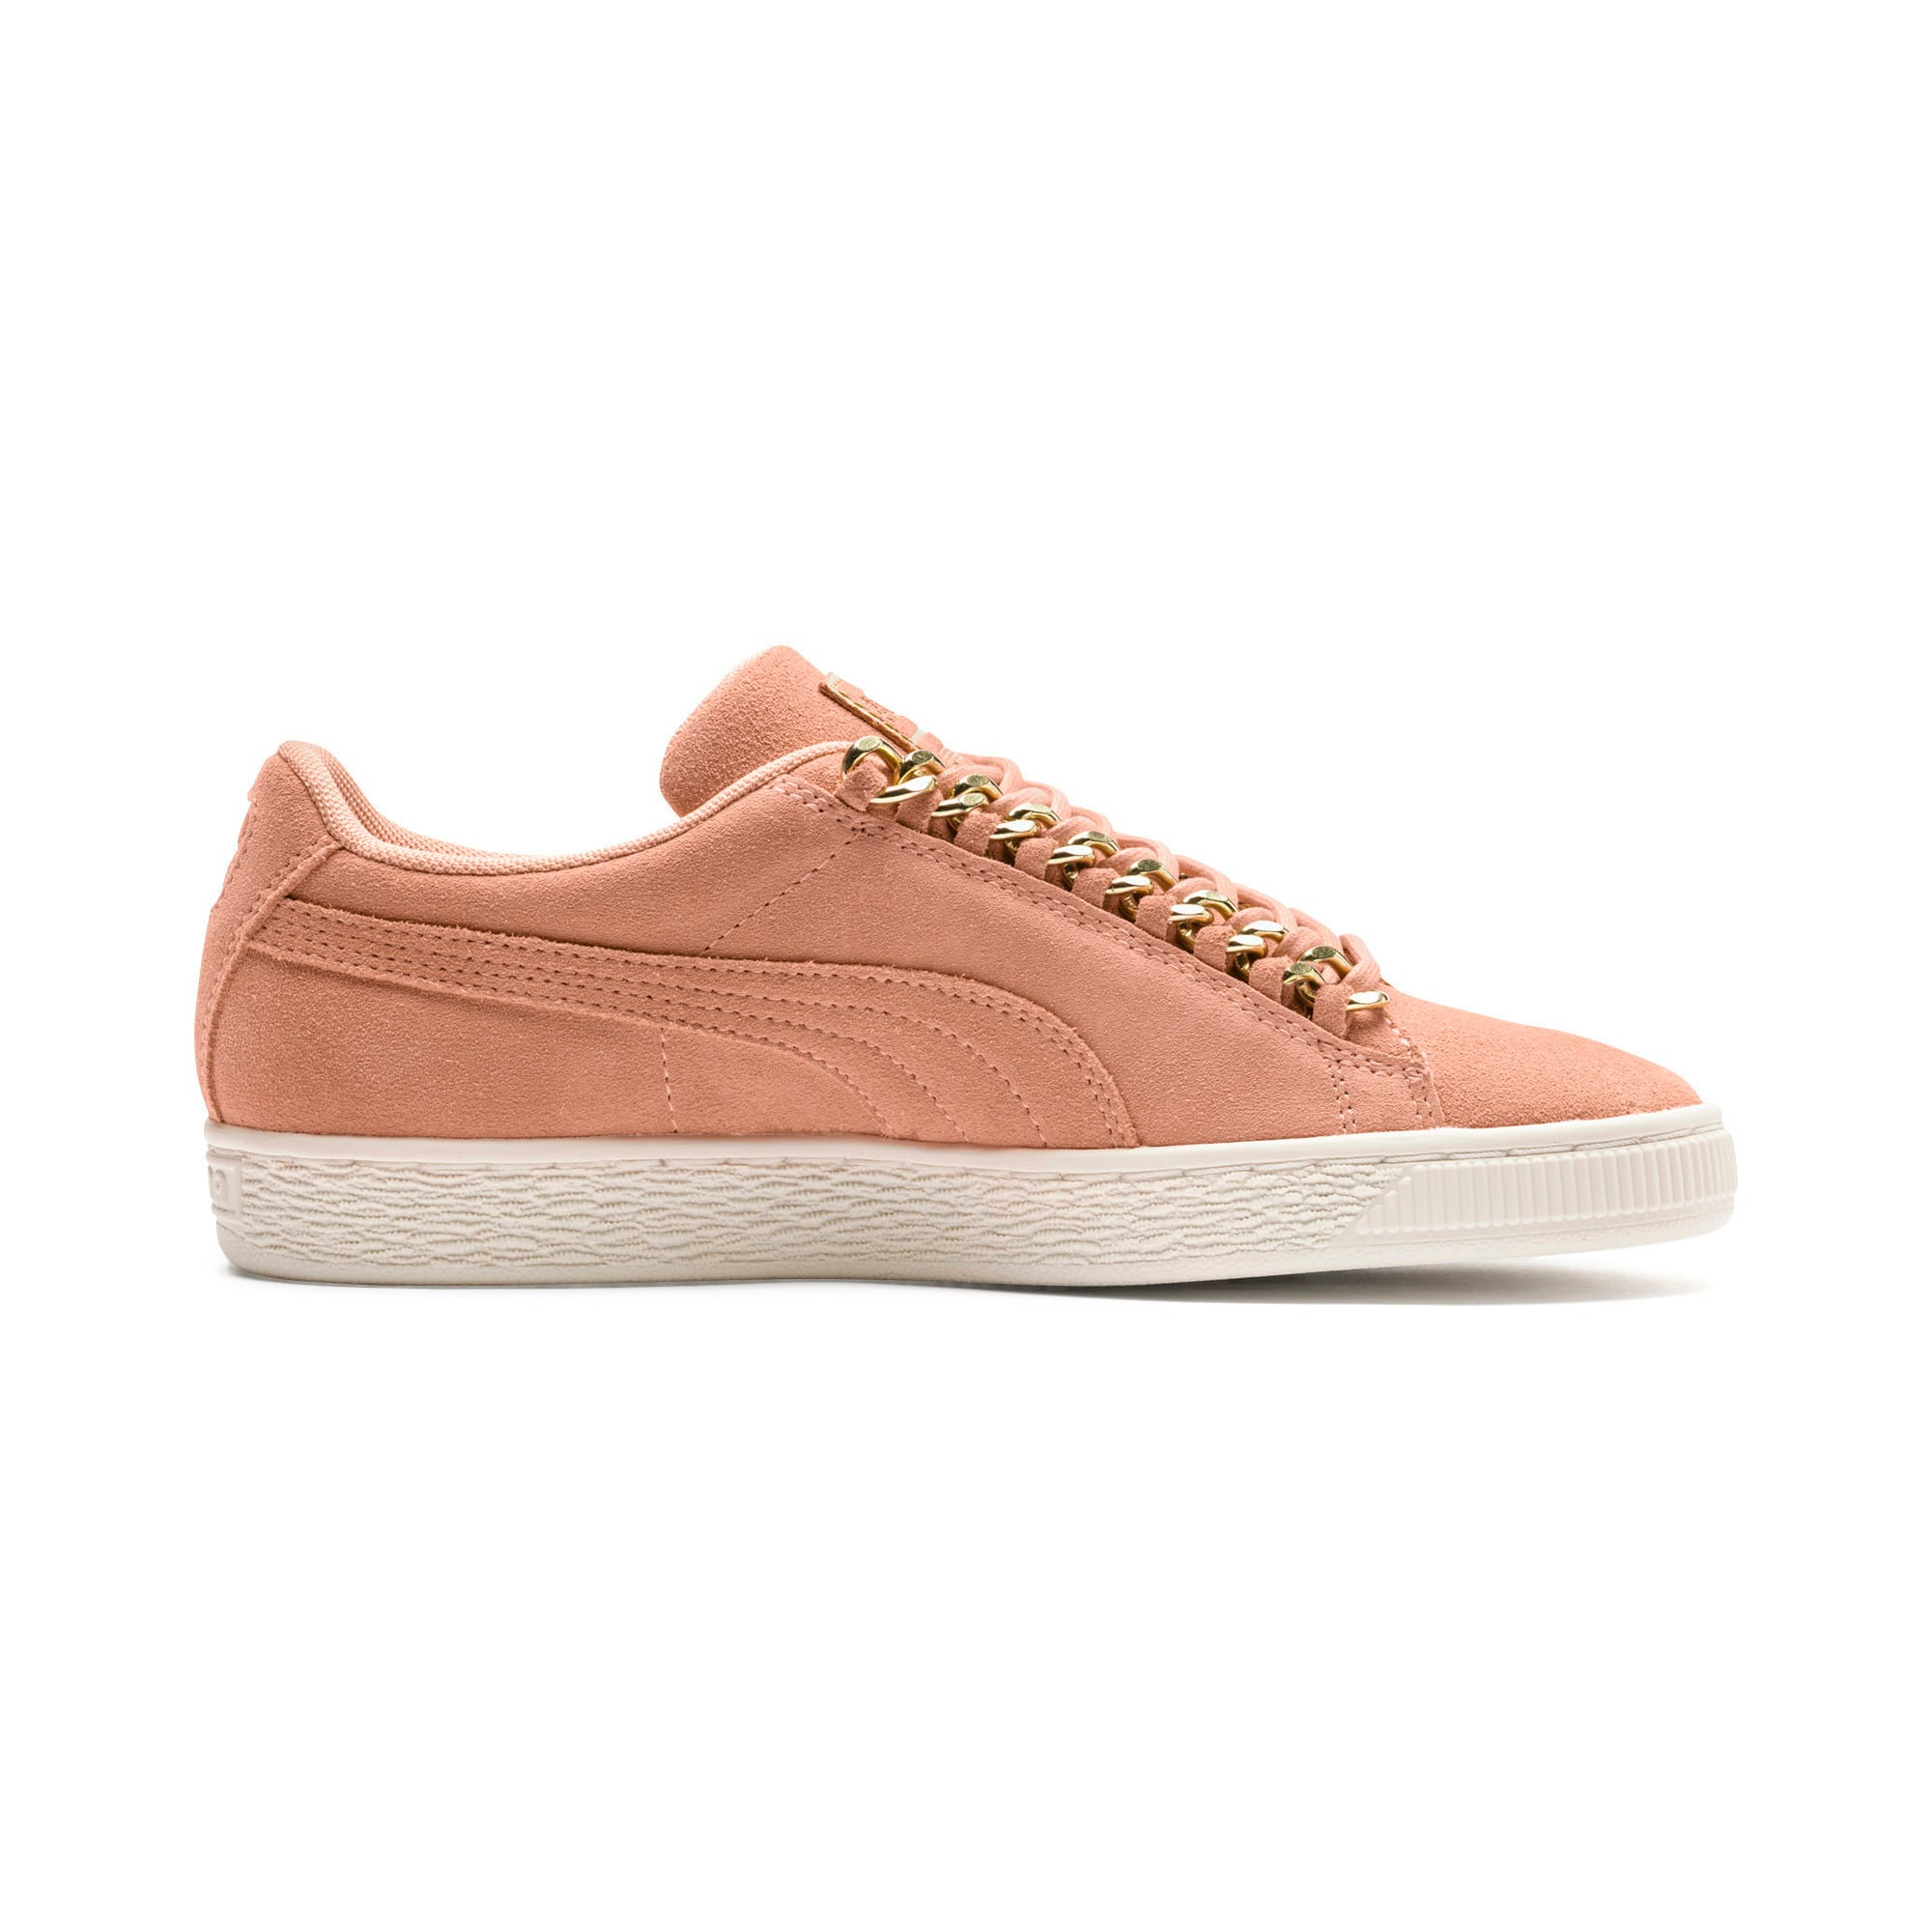 Thumbnail 5 of Suede Classic Chains Women's Trainers, Dusty Coral-Puma Team Gold, medium-IND